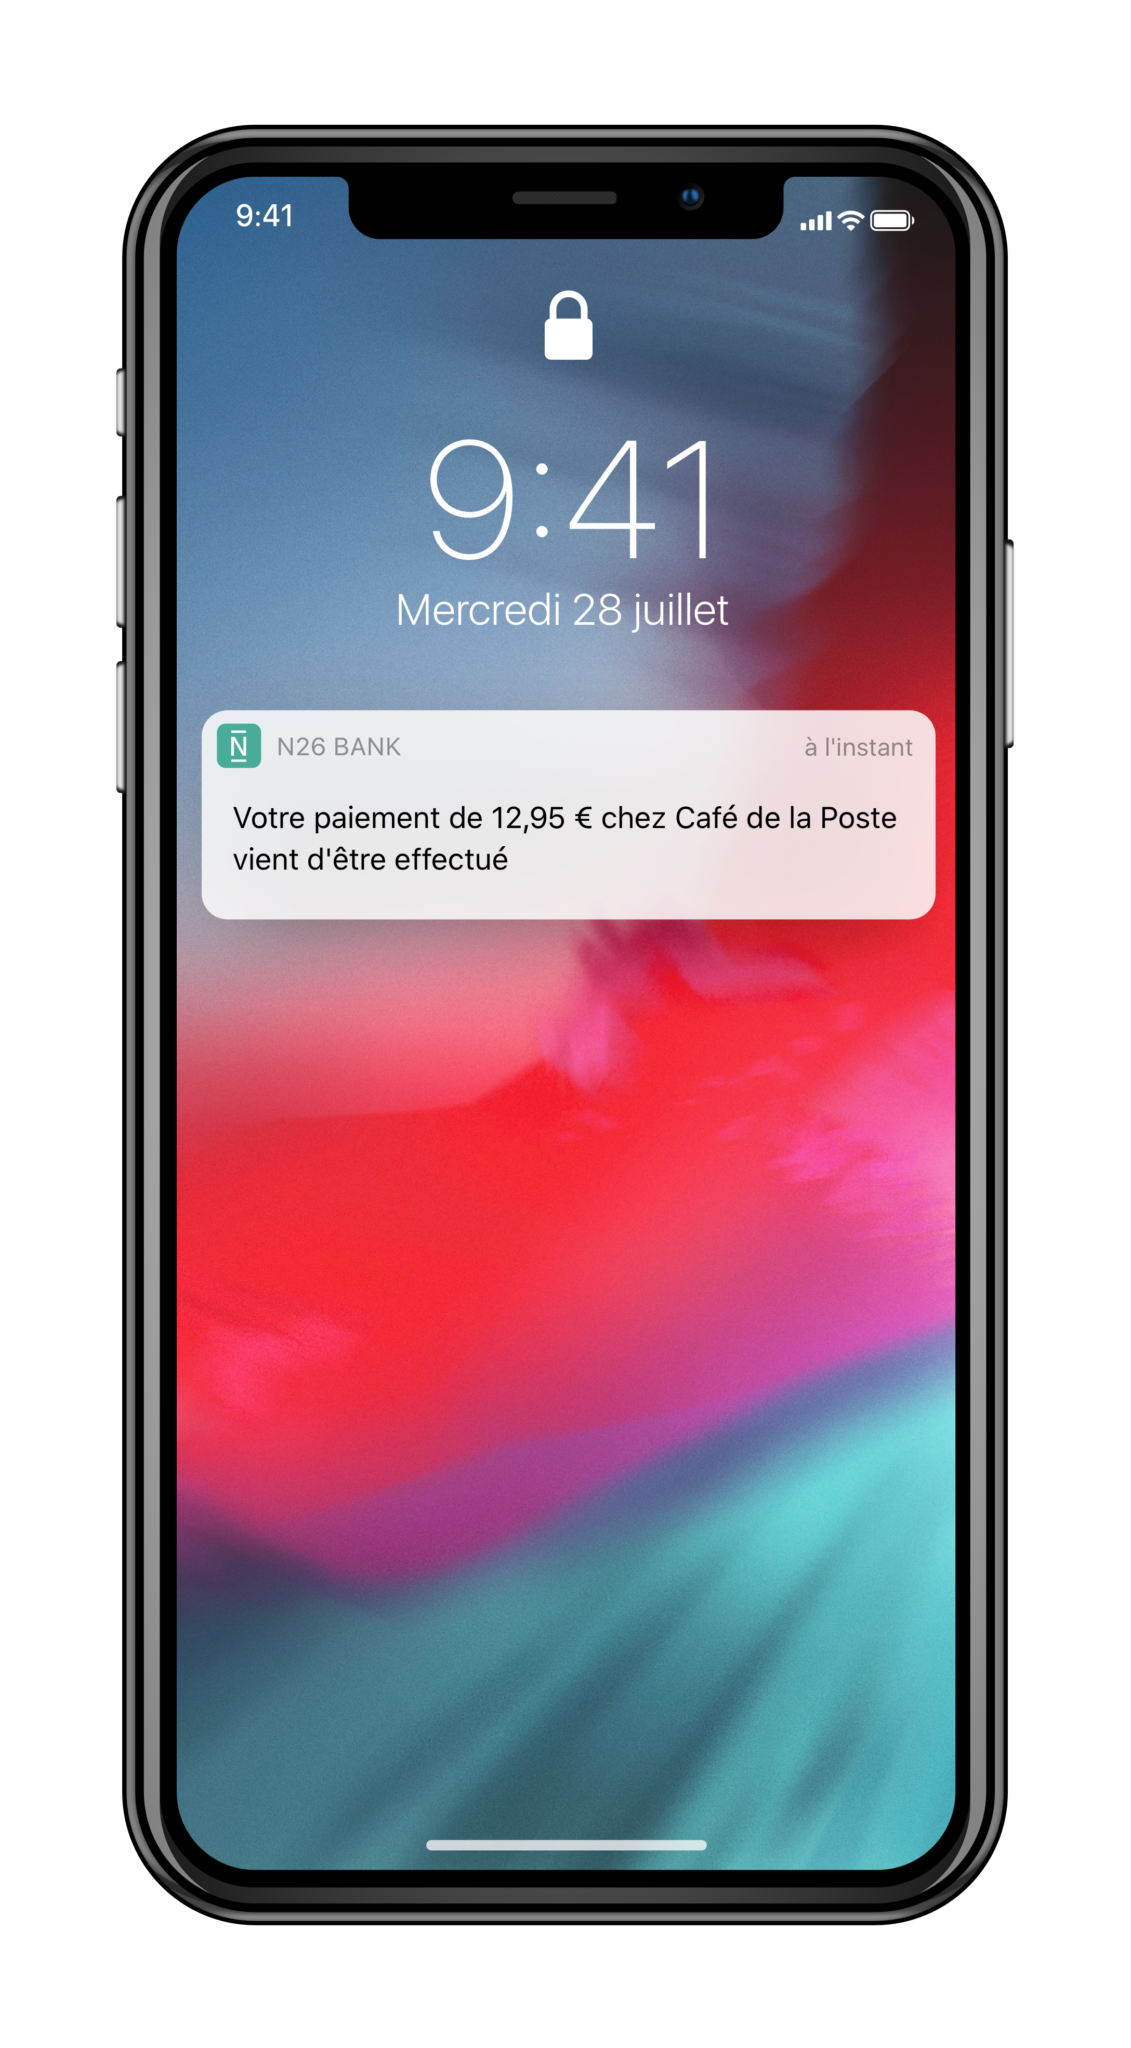 N26-banque-etranger-voyage-notifications